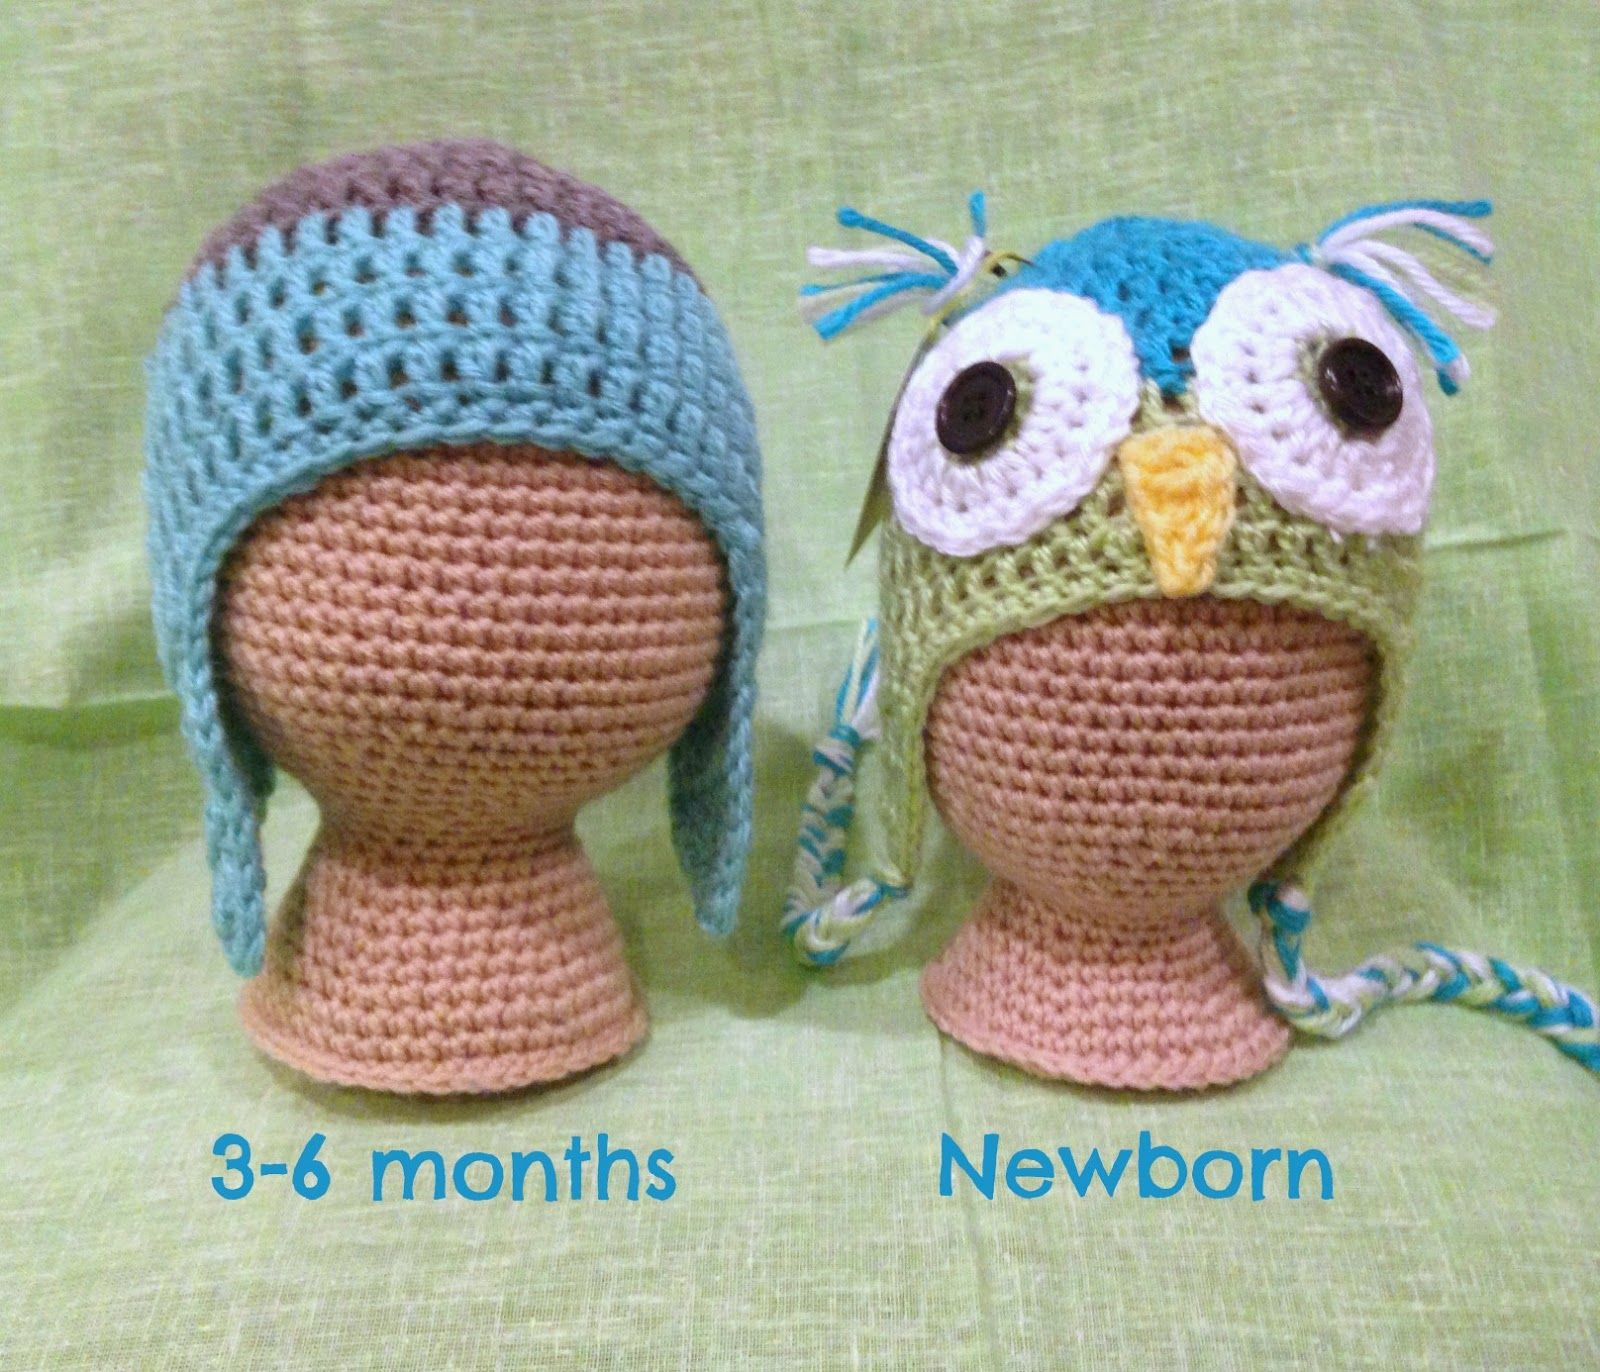 5 little monsters is craft blog where you will find crochet 5 little monsters is craft blog where you will find crochet sewing embroidery projects bankloansurffo Image collections